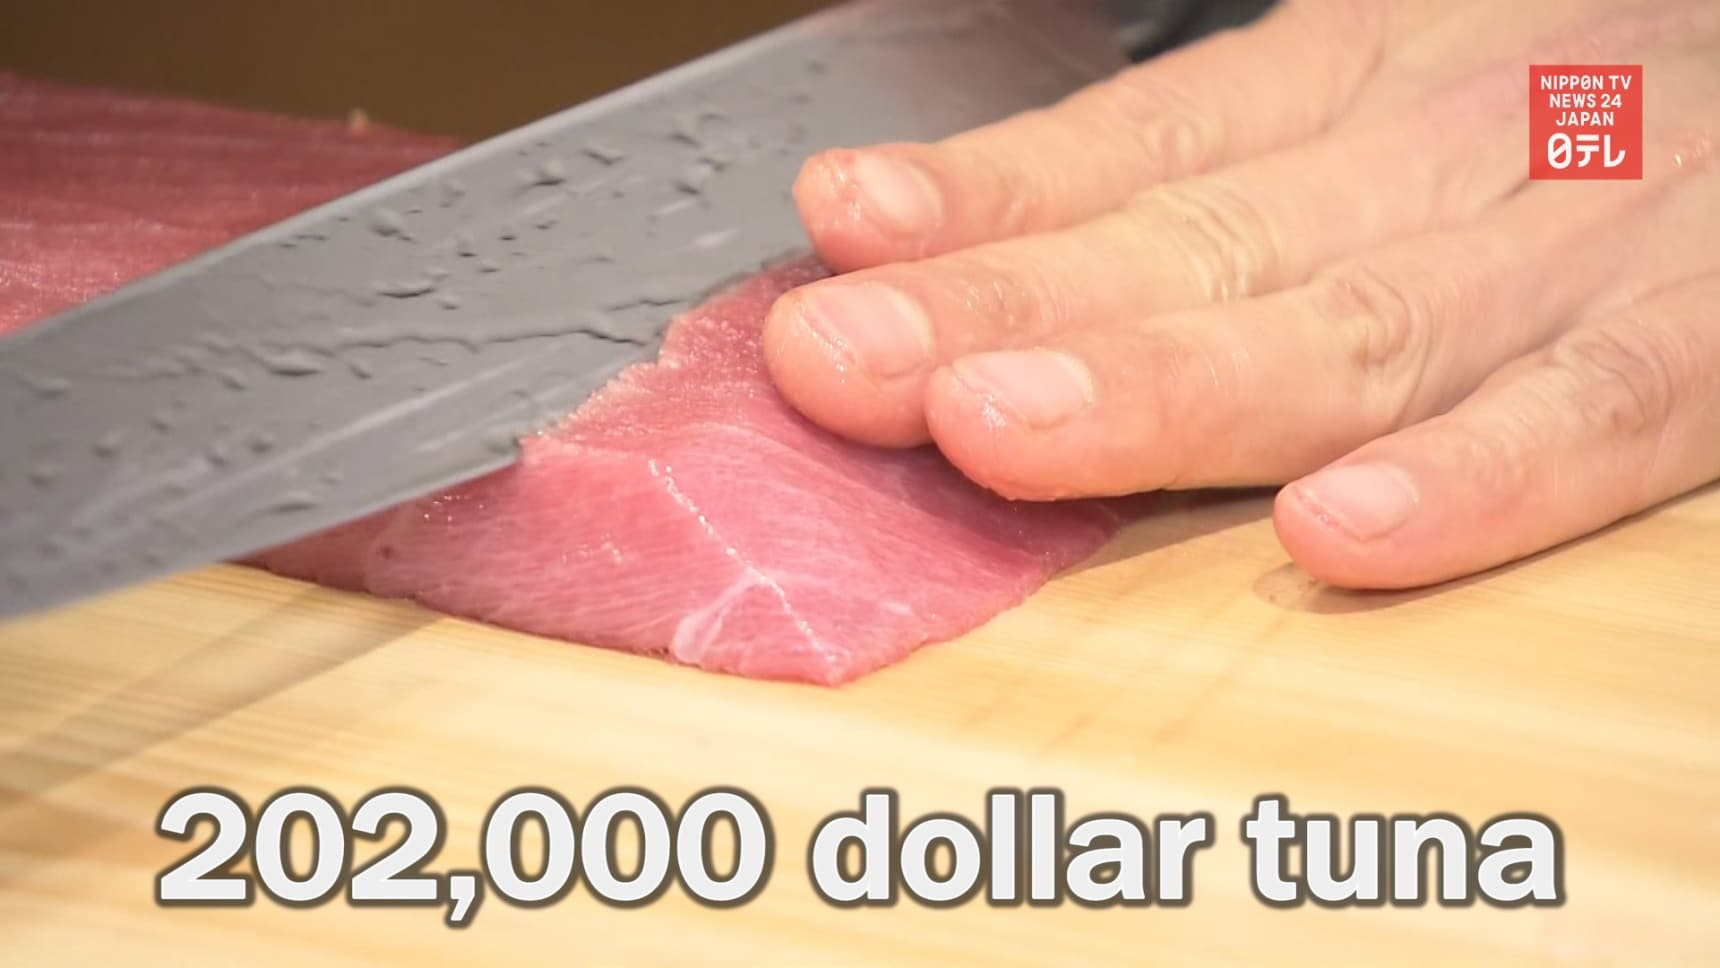 Feeling Hungry? How about a US$200k Tuna?